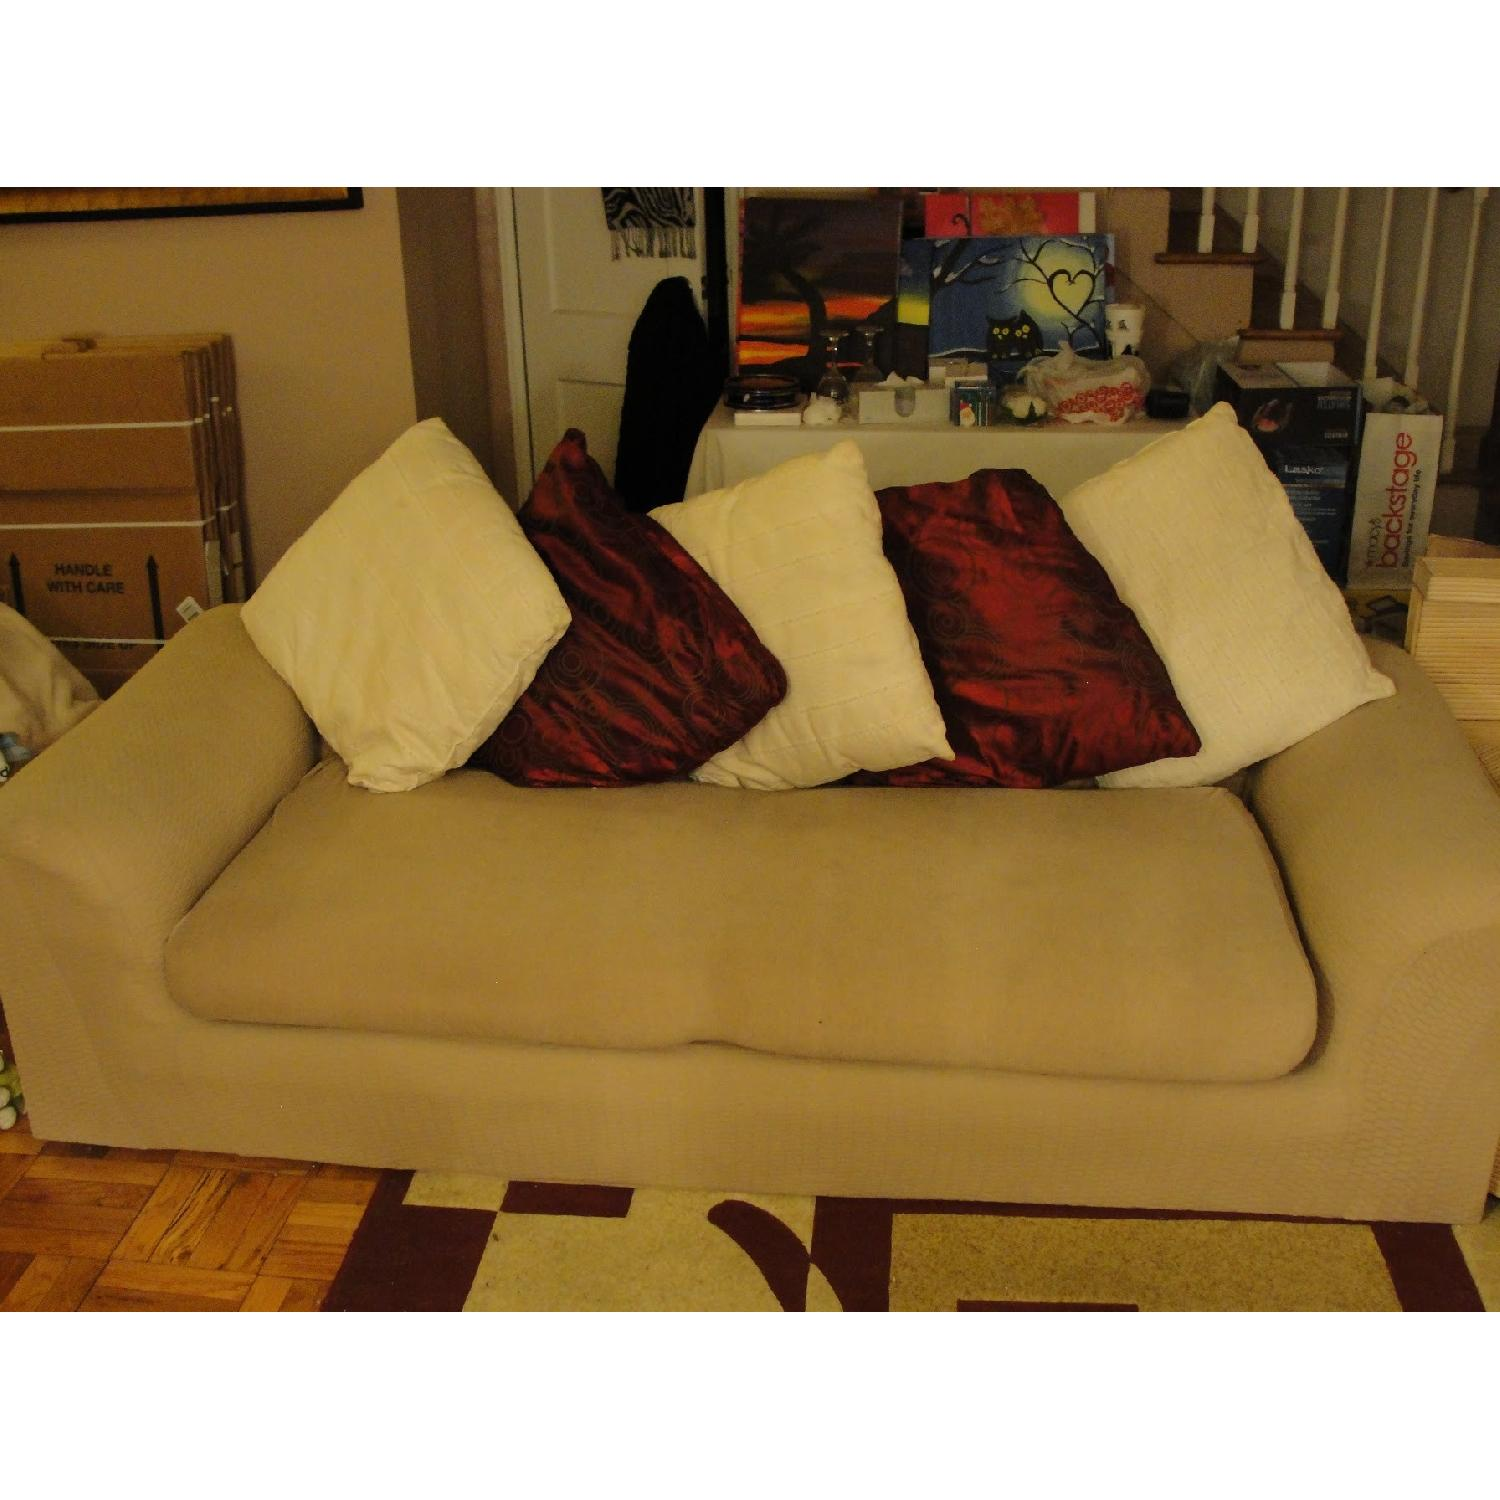 Beige 3-Piece Slipcovered Sectional Sofa - image-3